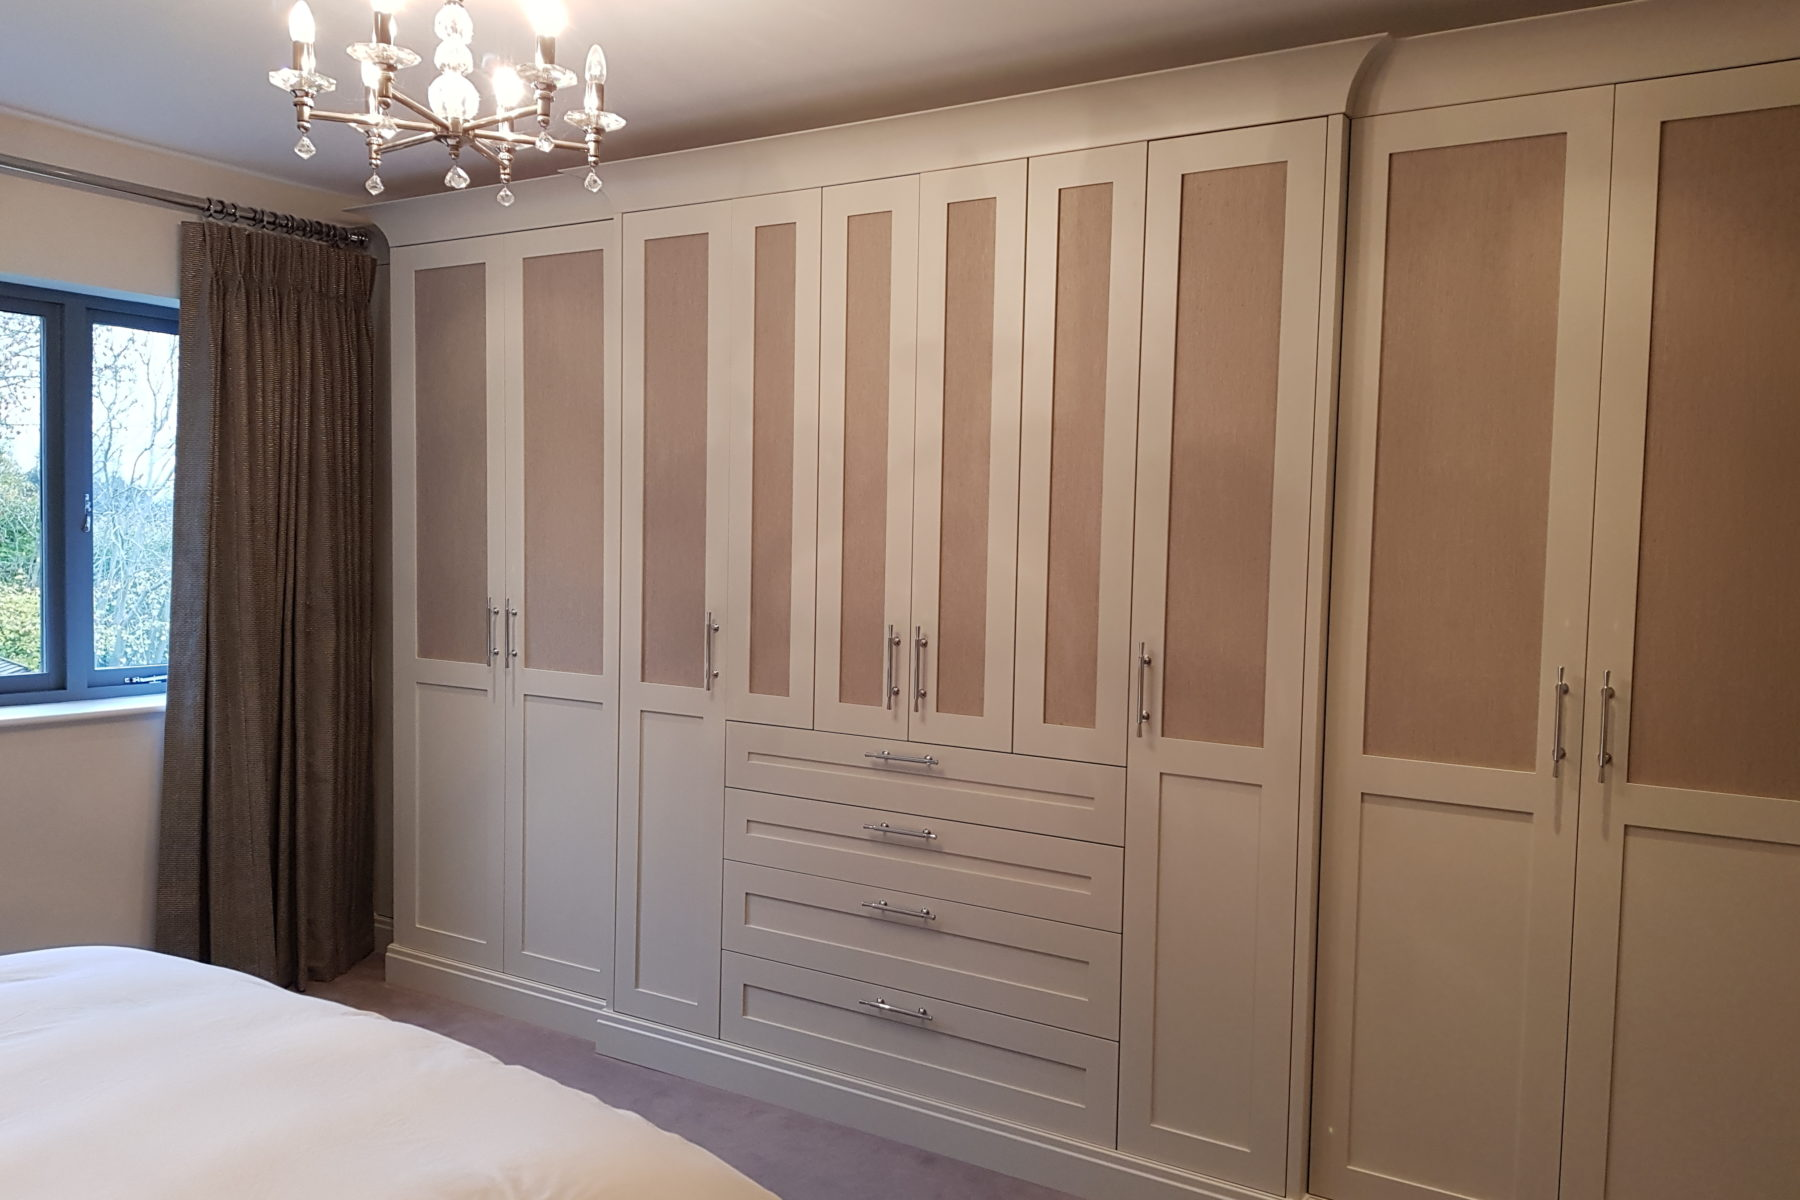 Bedroom wardrobes with pale pink panelled doors